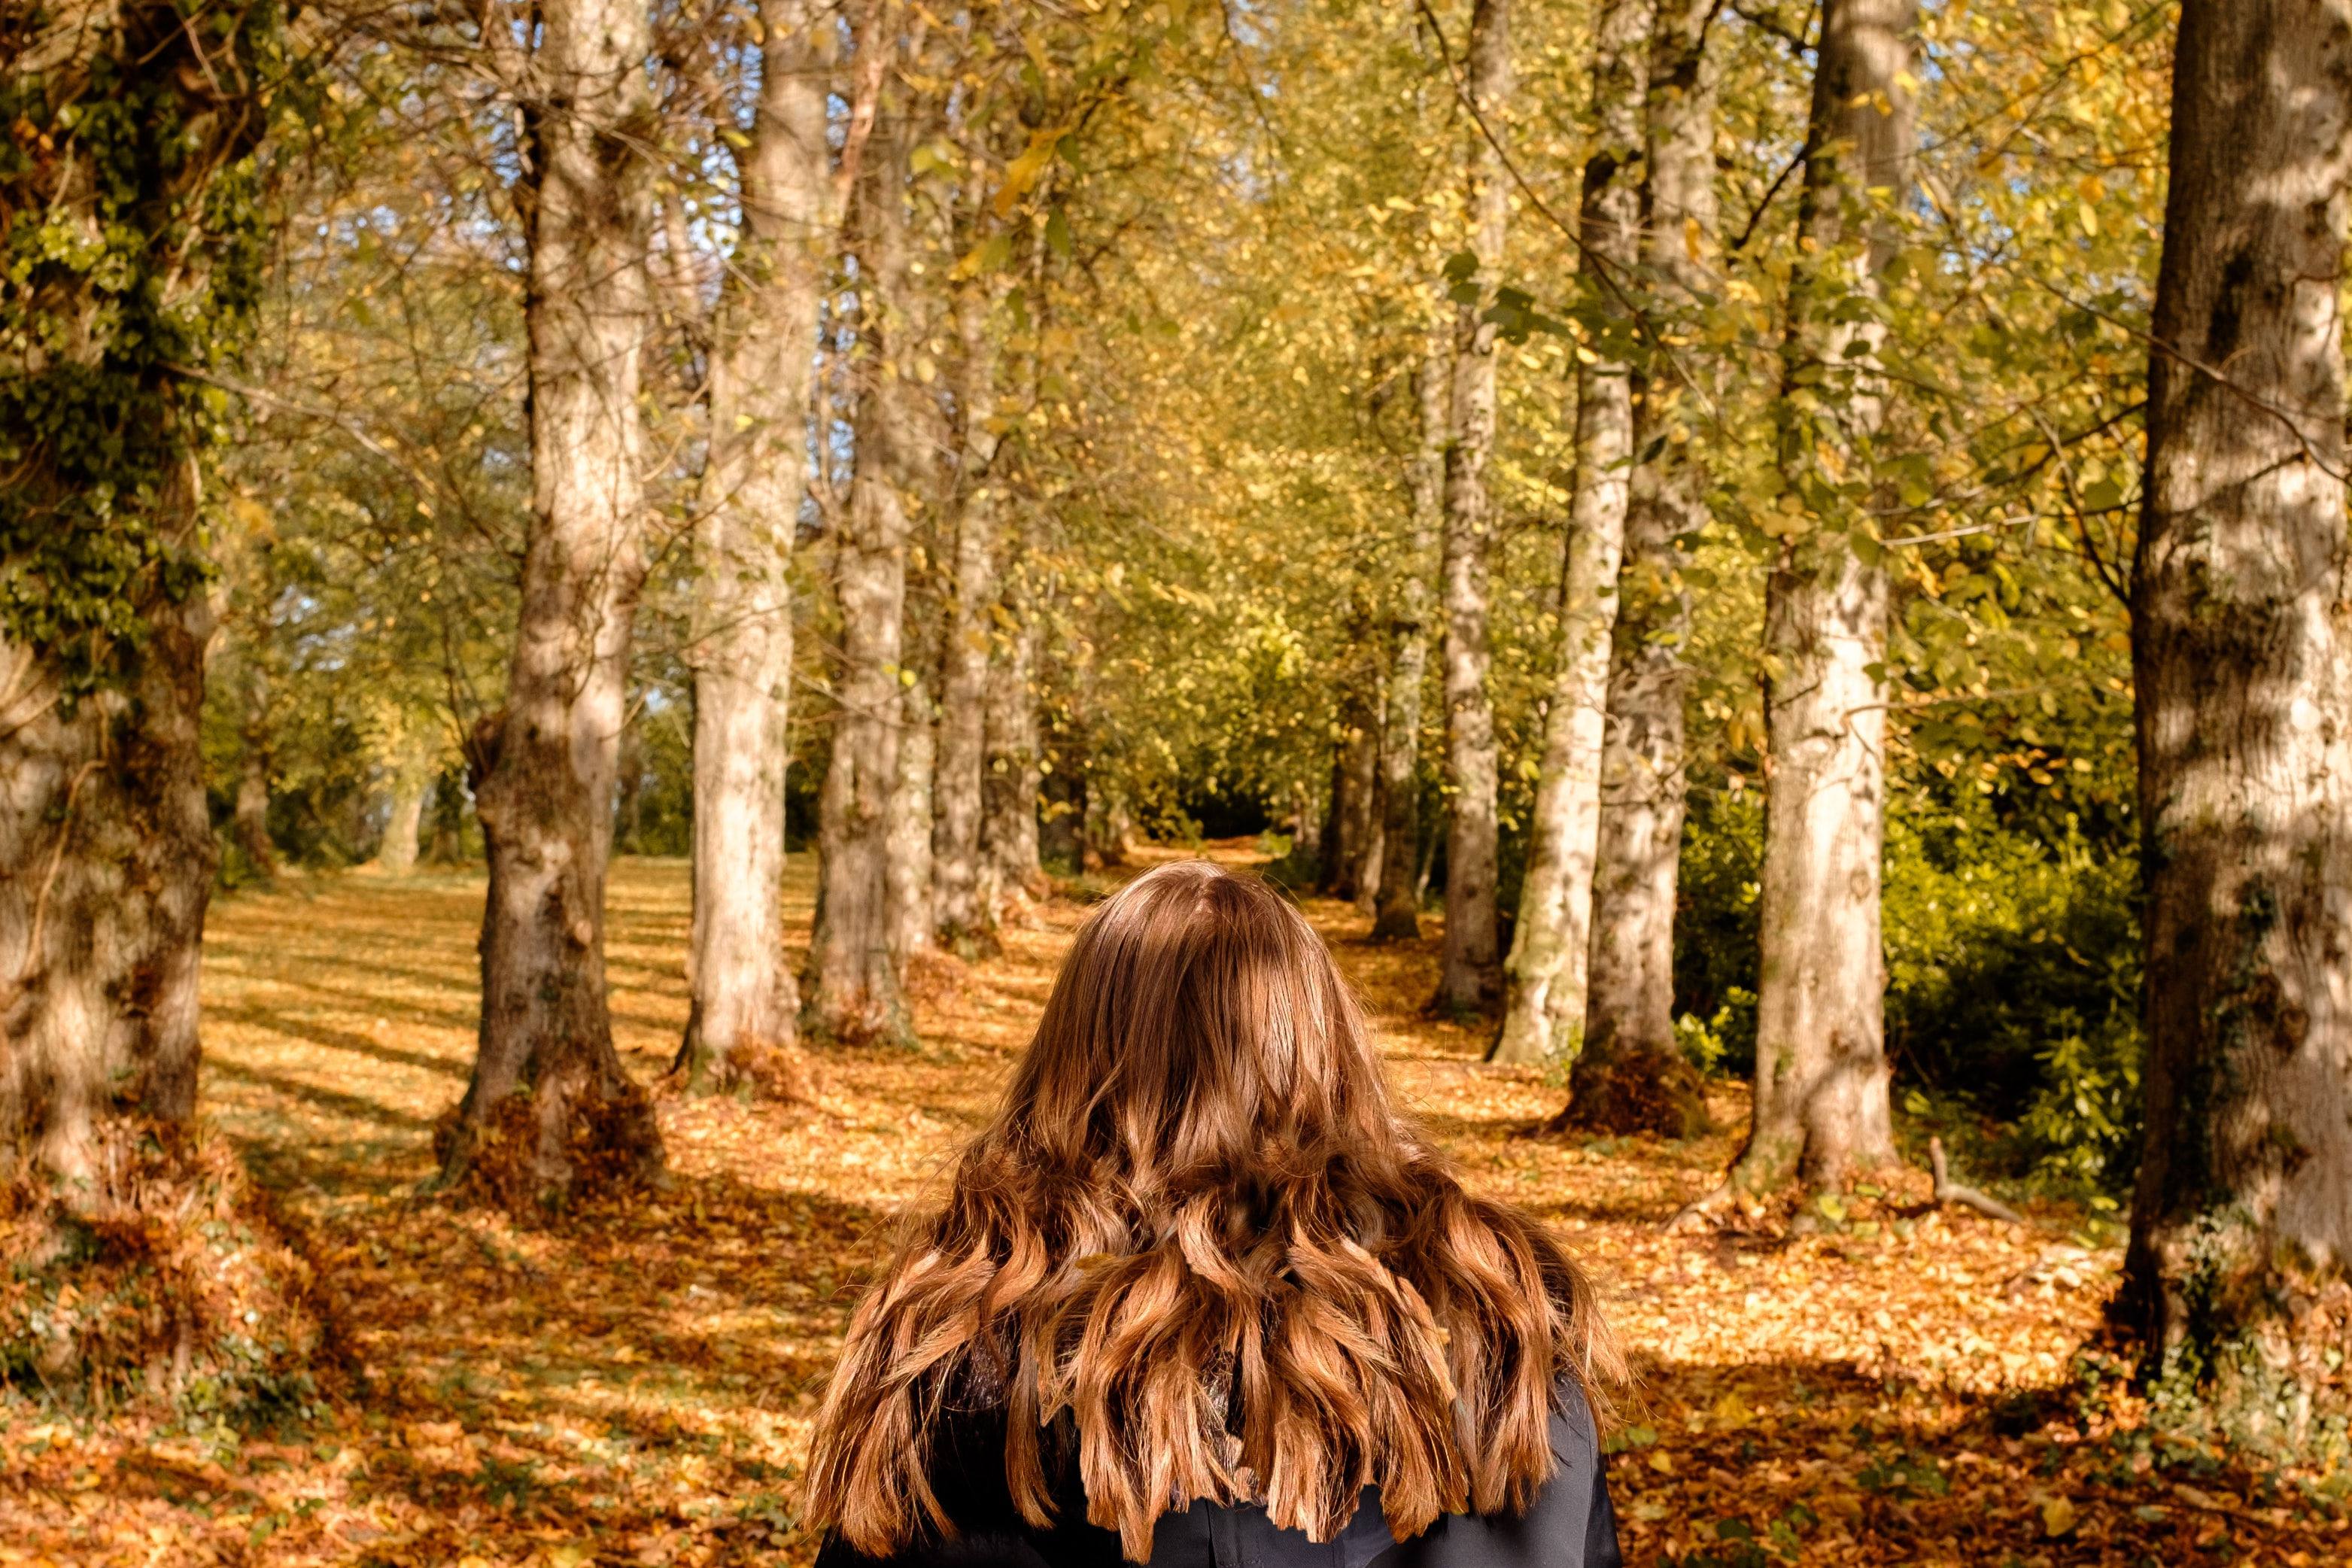 woman walking in the middle of pathway with trees